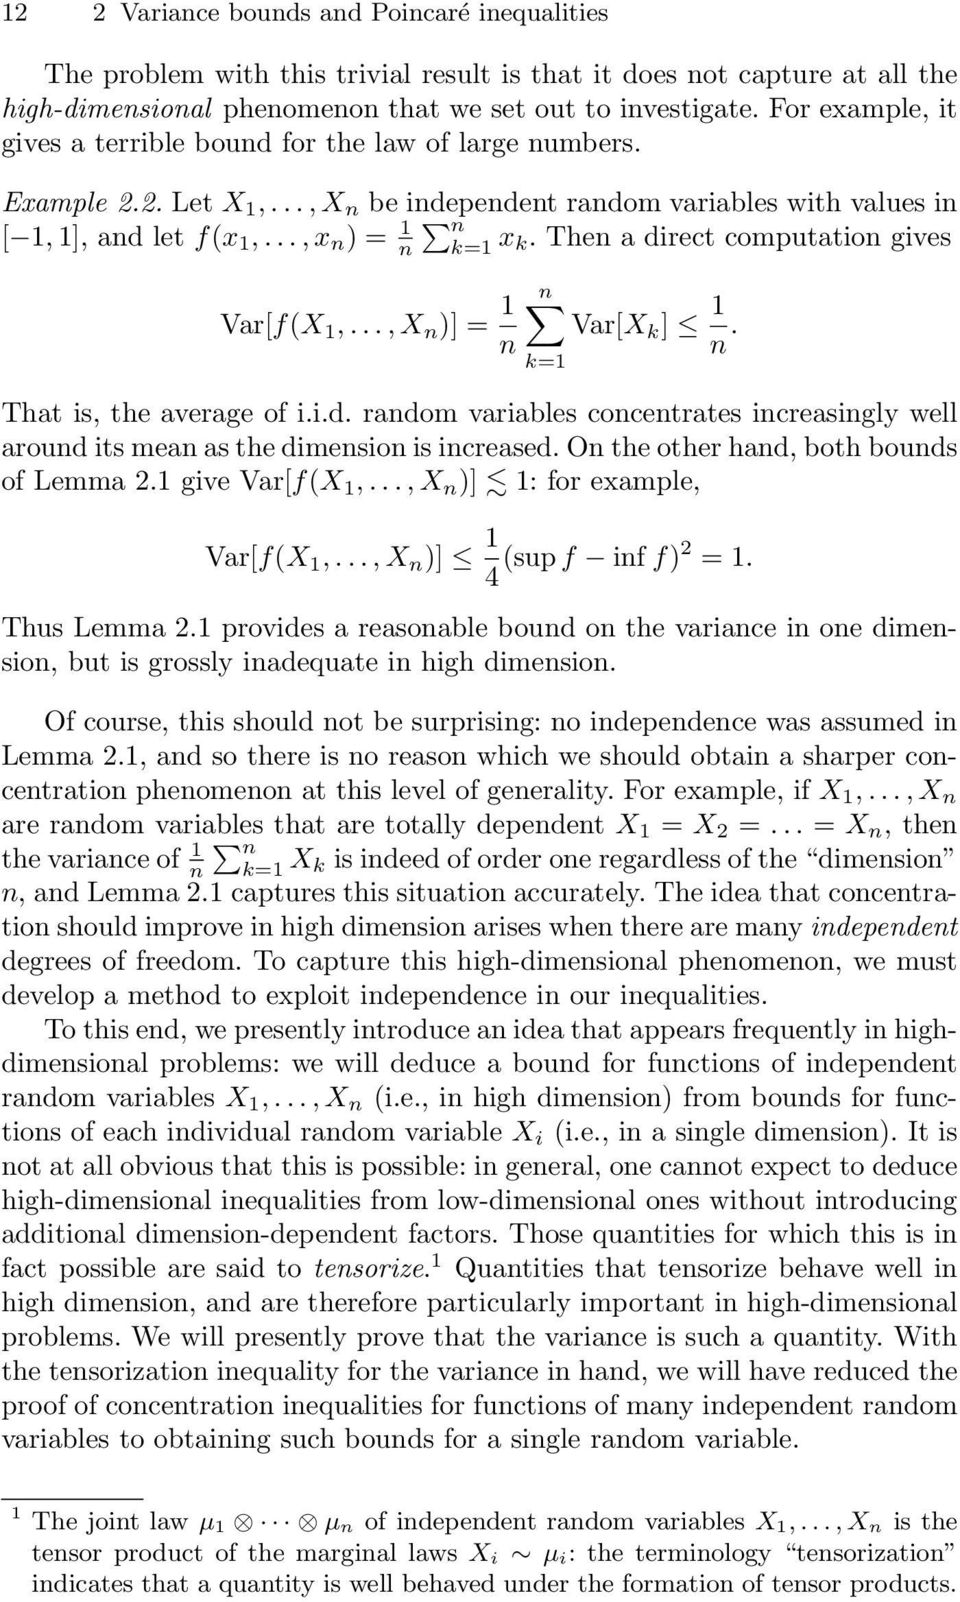 Then a direct computation gives Var[f(X 1,...,X n )] = 1 n Var[X k ] 1 n. That is, the average of i.i.d. random variables concentrates increasingly well around its mean as the dimension is increased.